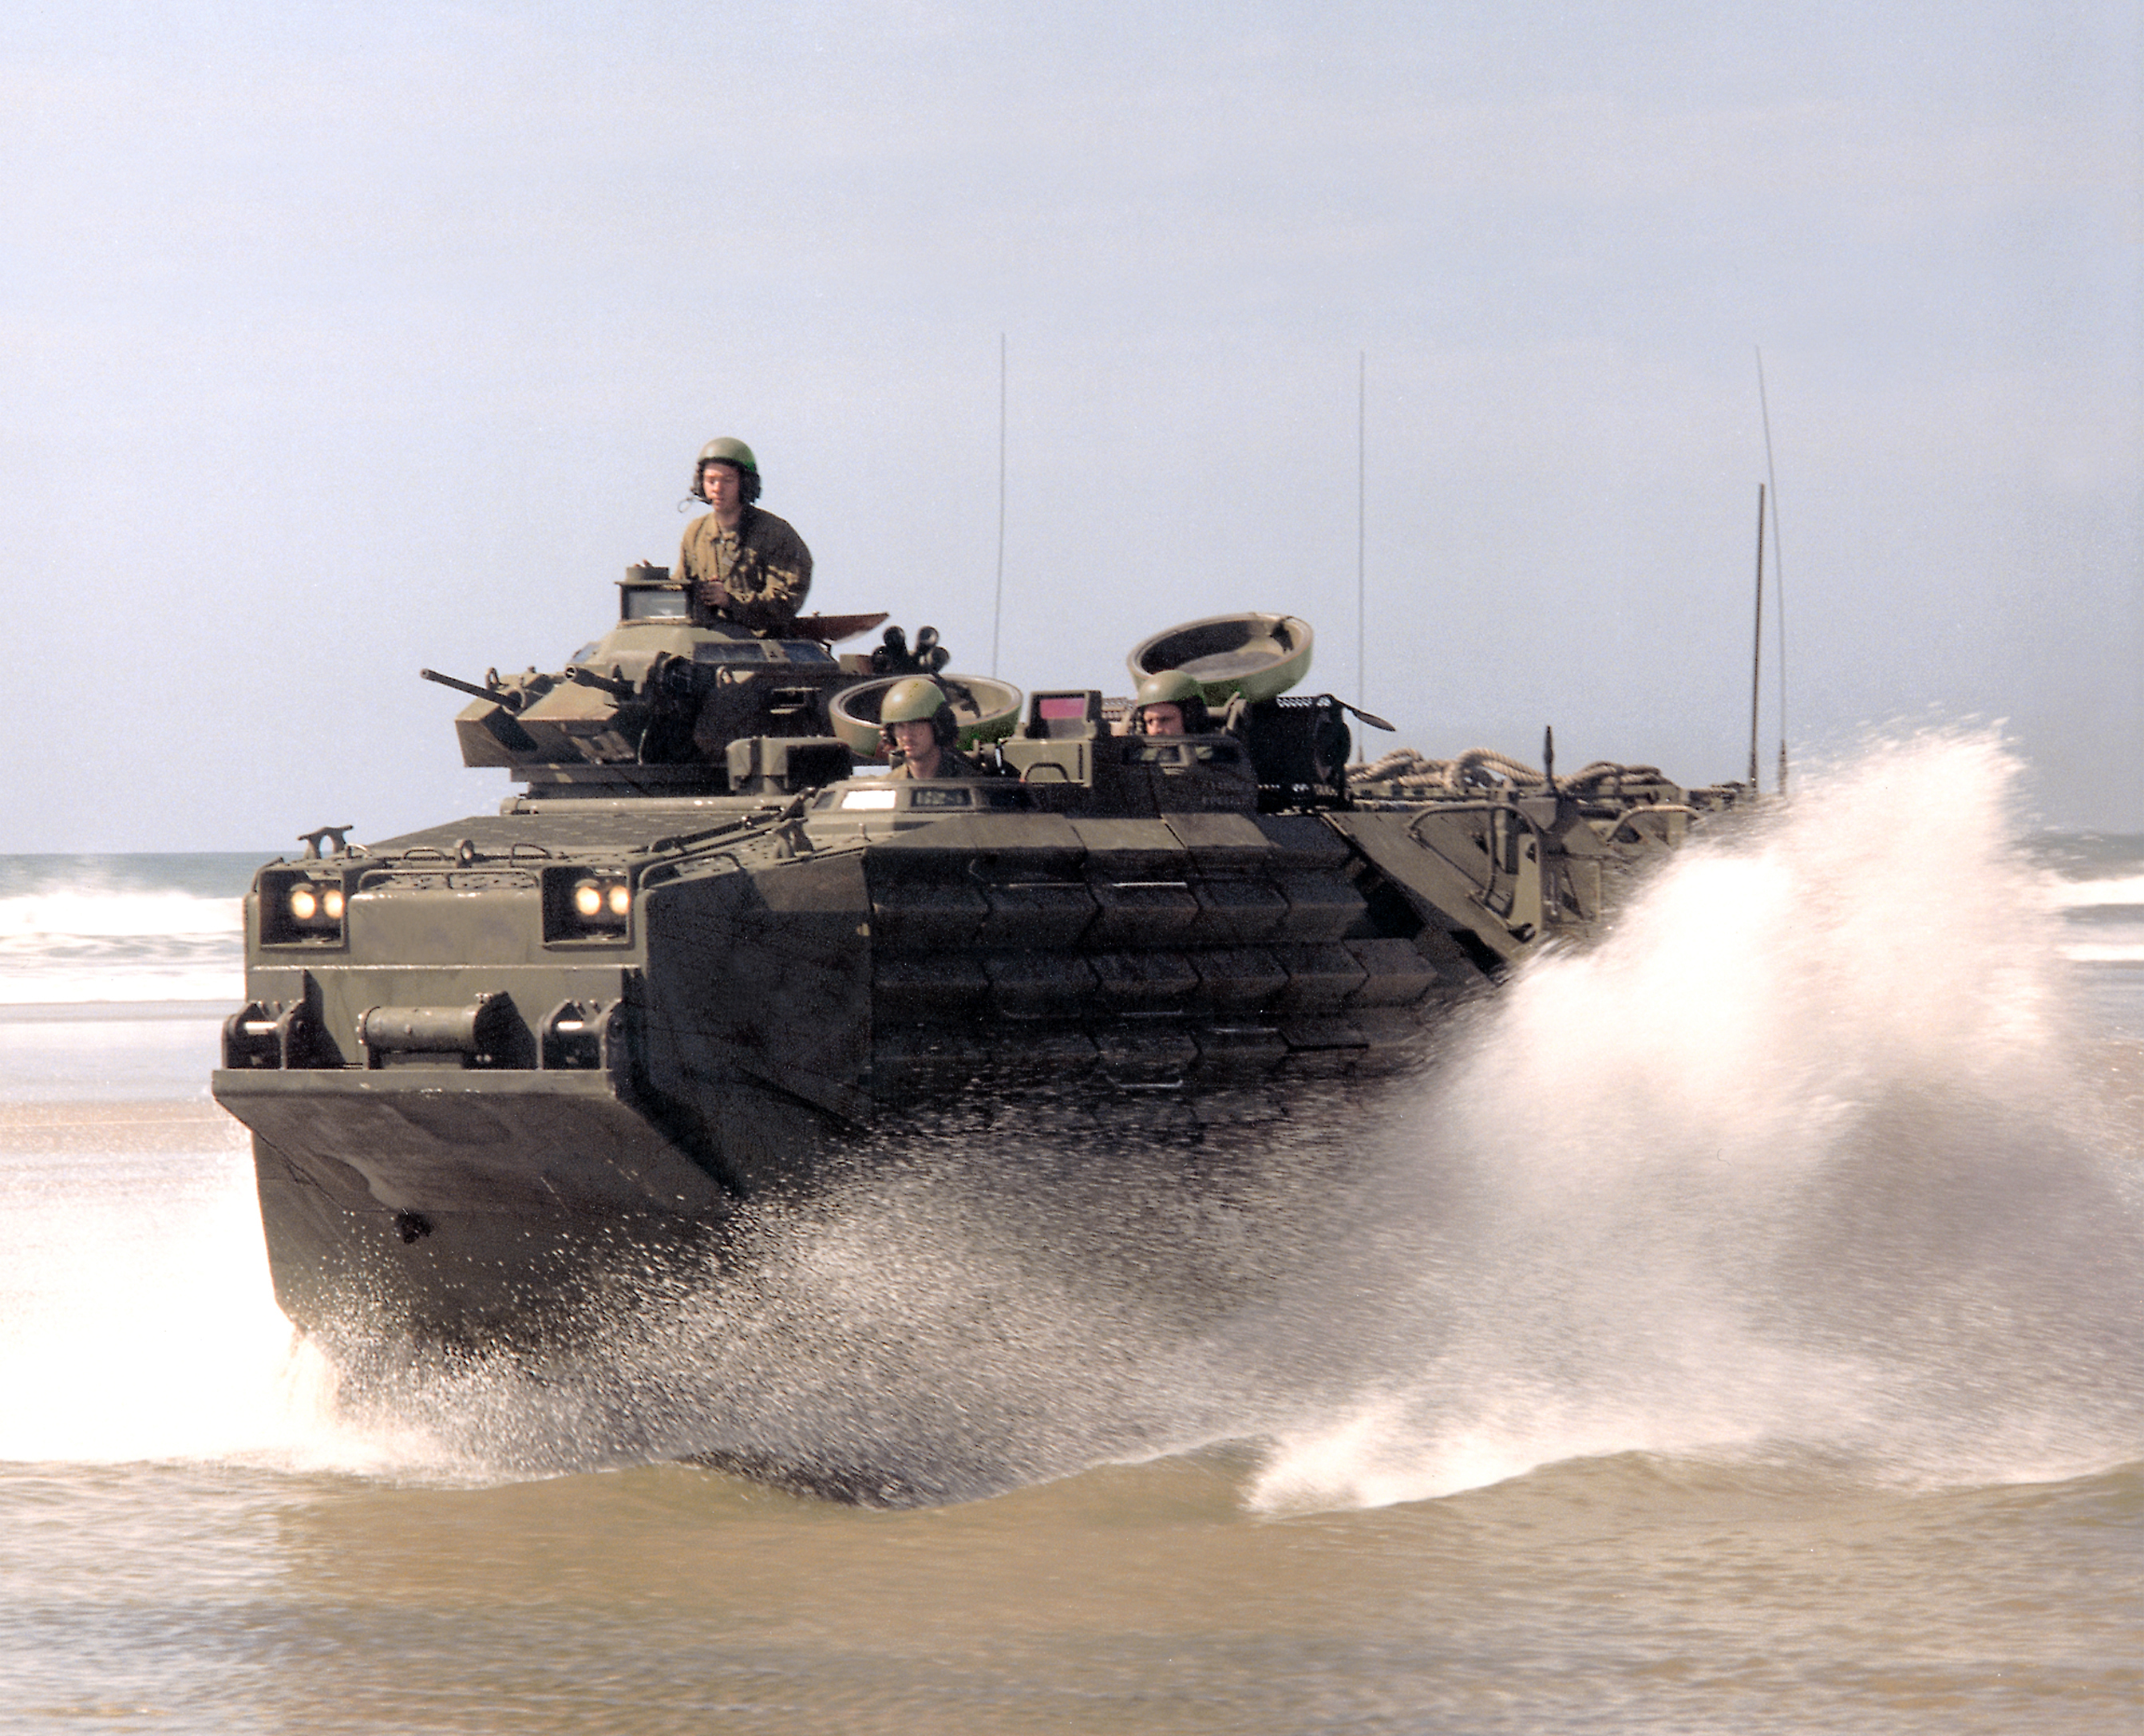 Bae Systems Legacy Of Amphibious Vehicle Excellence Continues With Survivability Upgrades